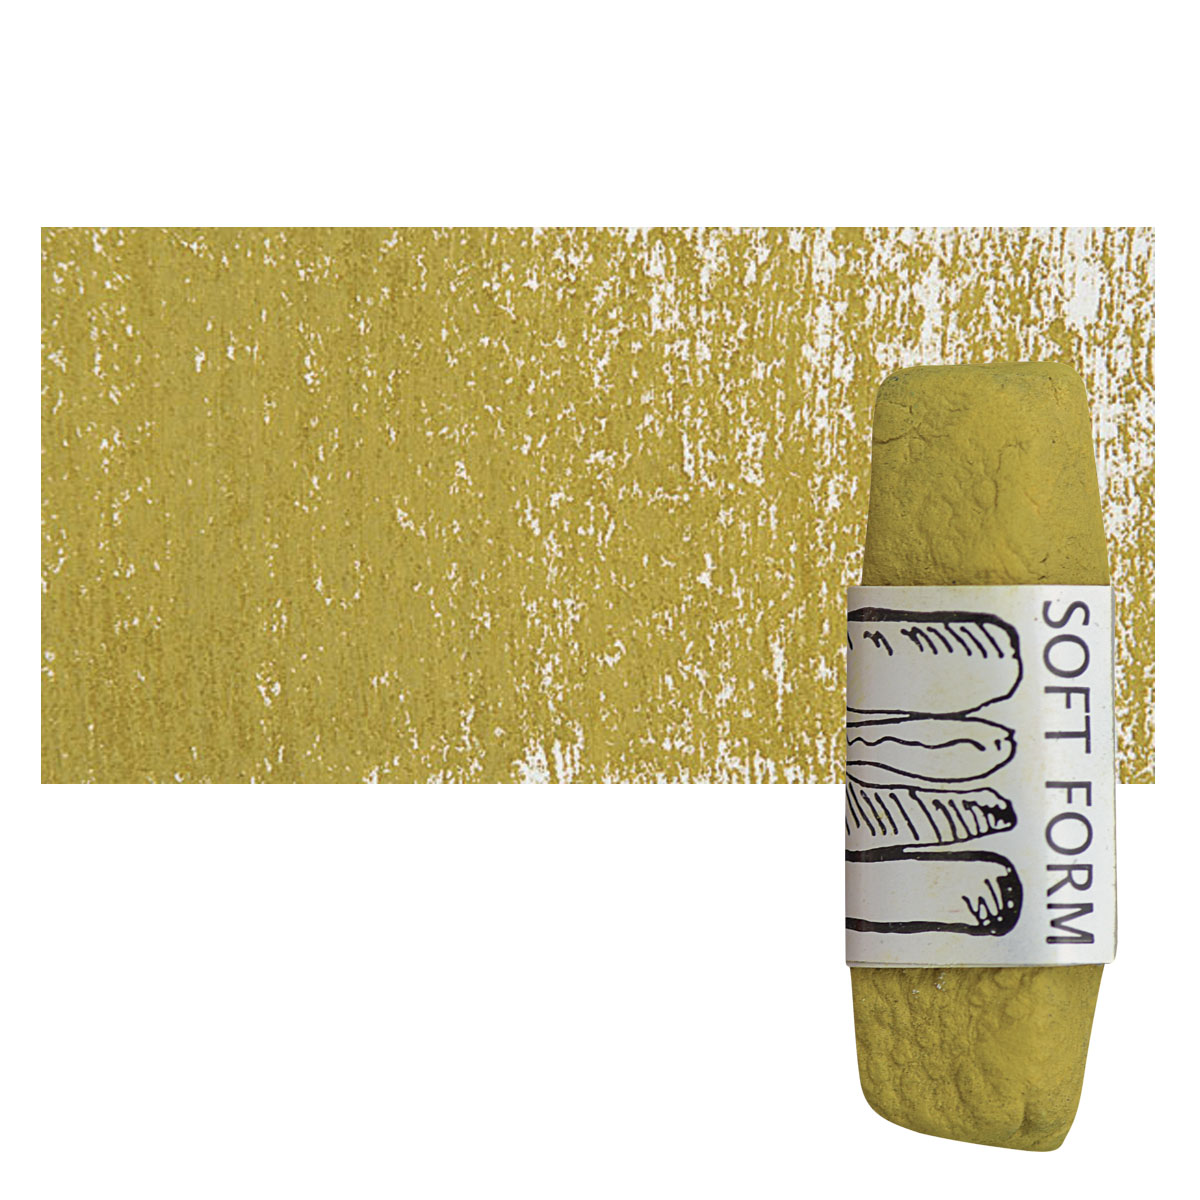 click to view a larger, more detailed swatch ...